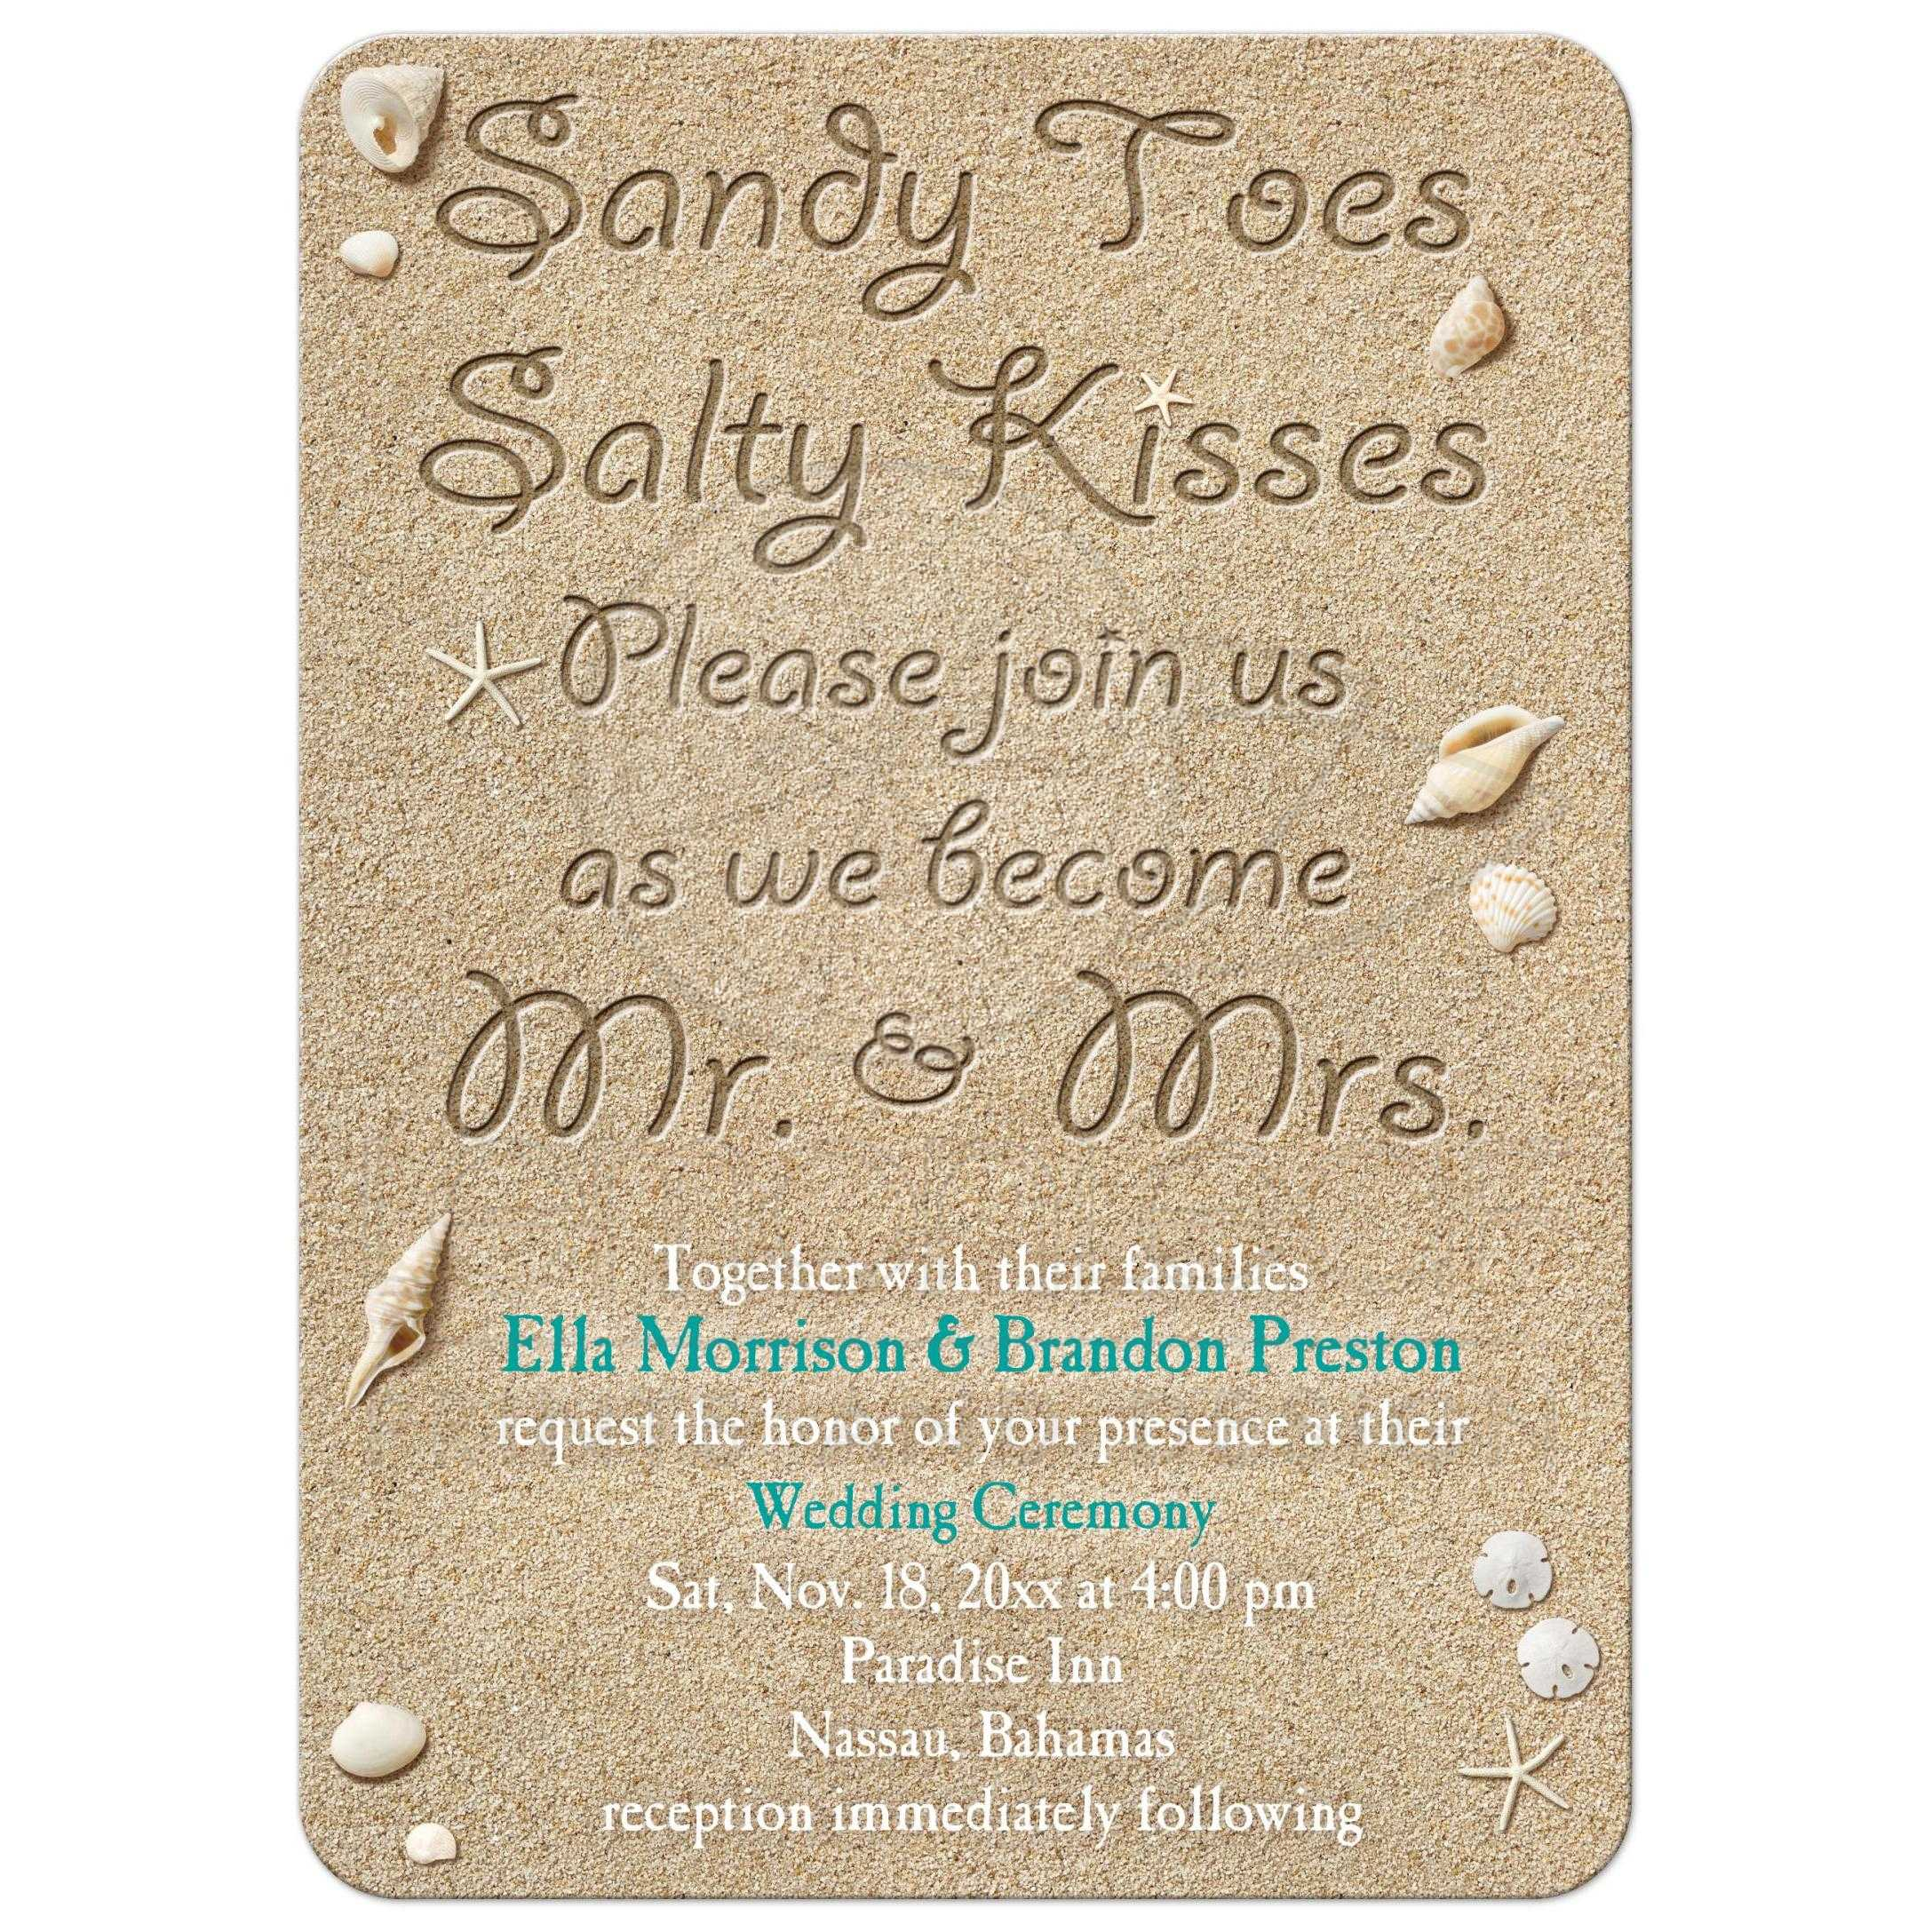 Destination Wedding Quotes For Invitations: Beach Sandy Toes Salty Kisses